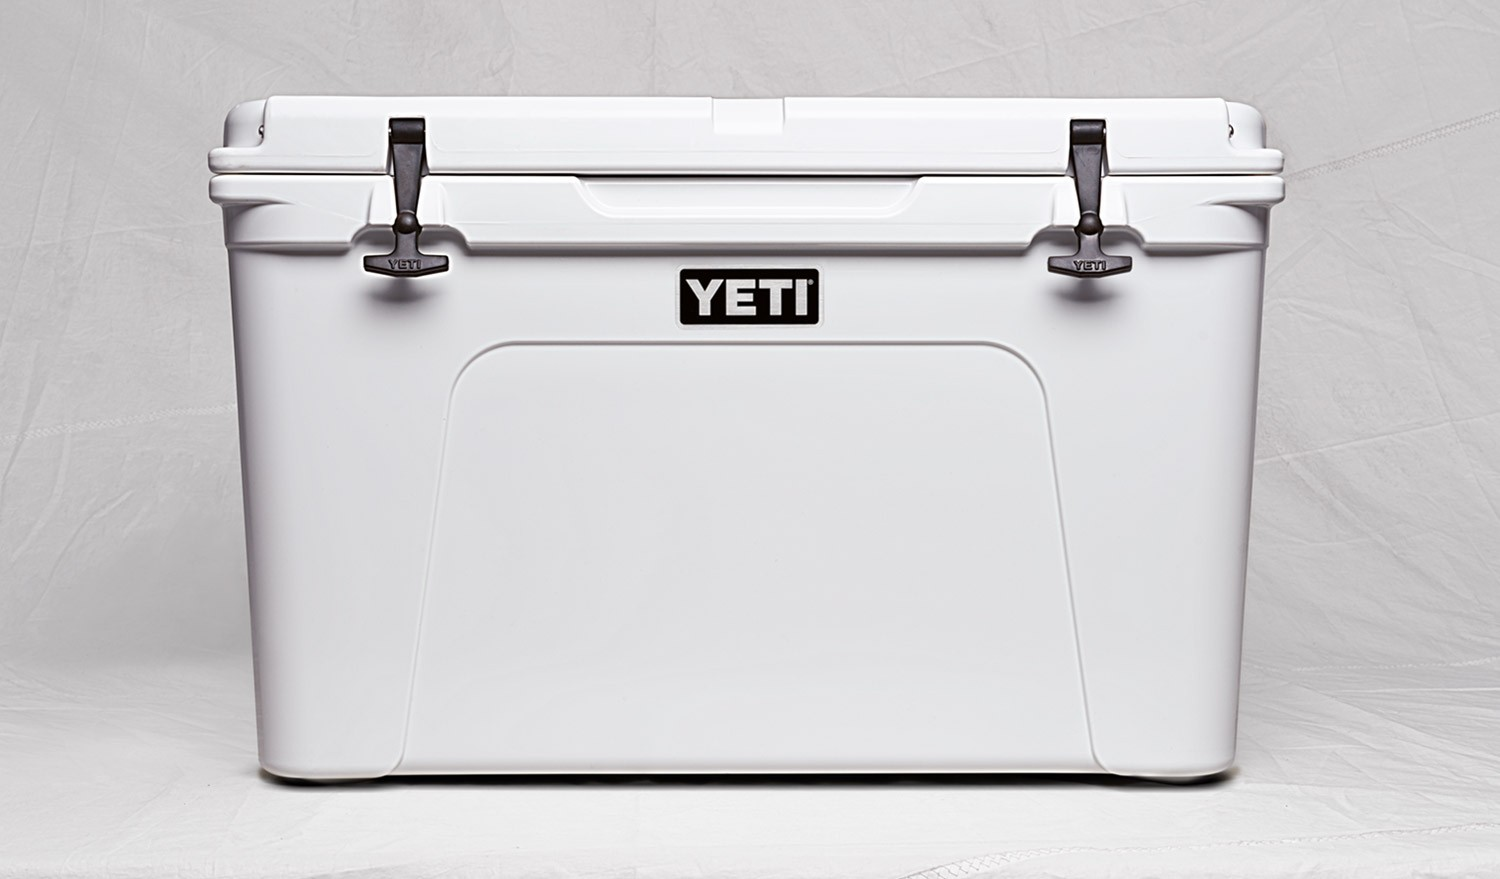 Grand Prize! Yeti Tundra 105 Ice Cooler